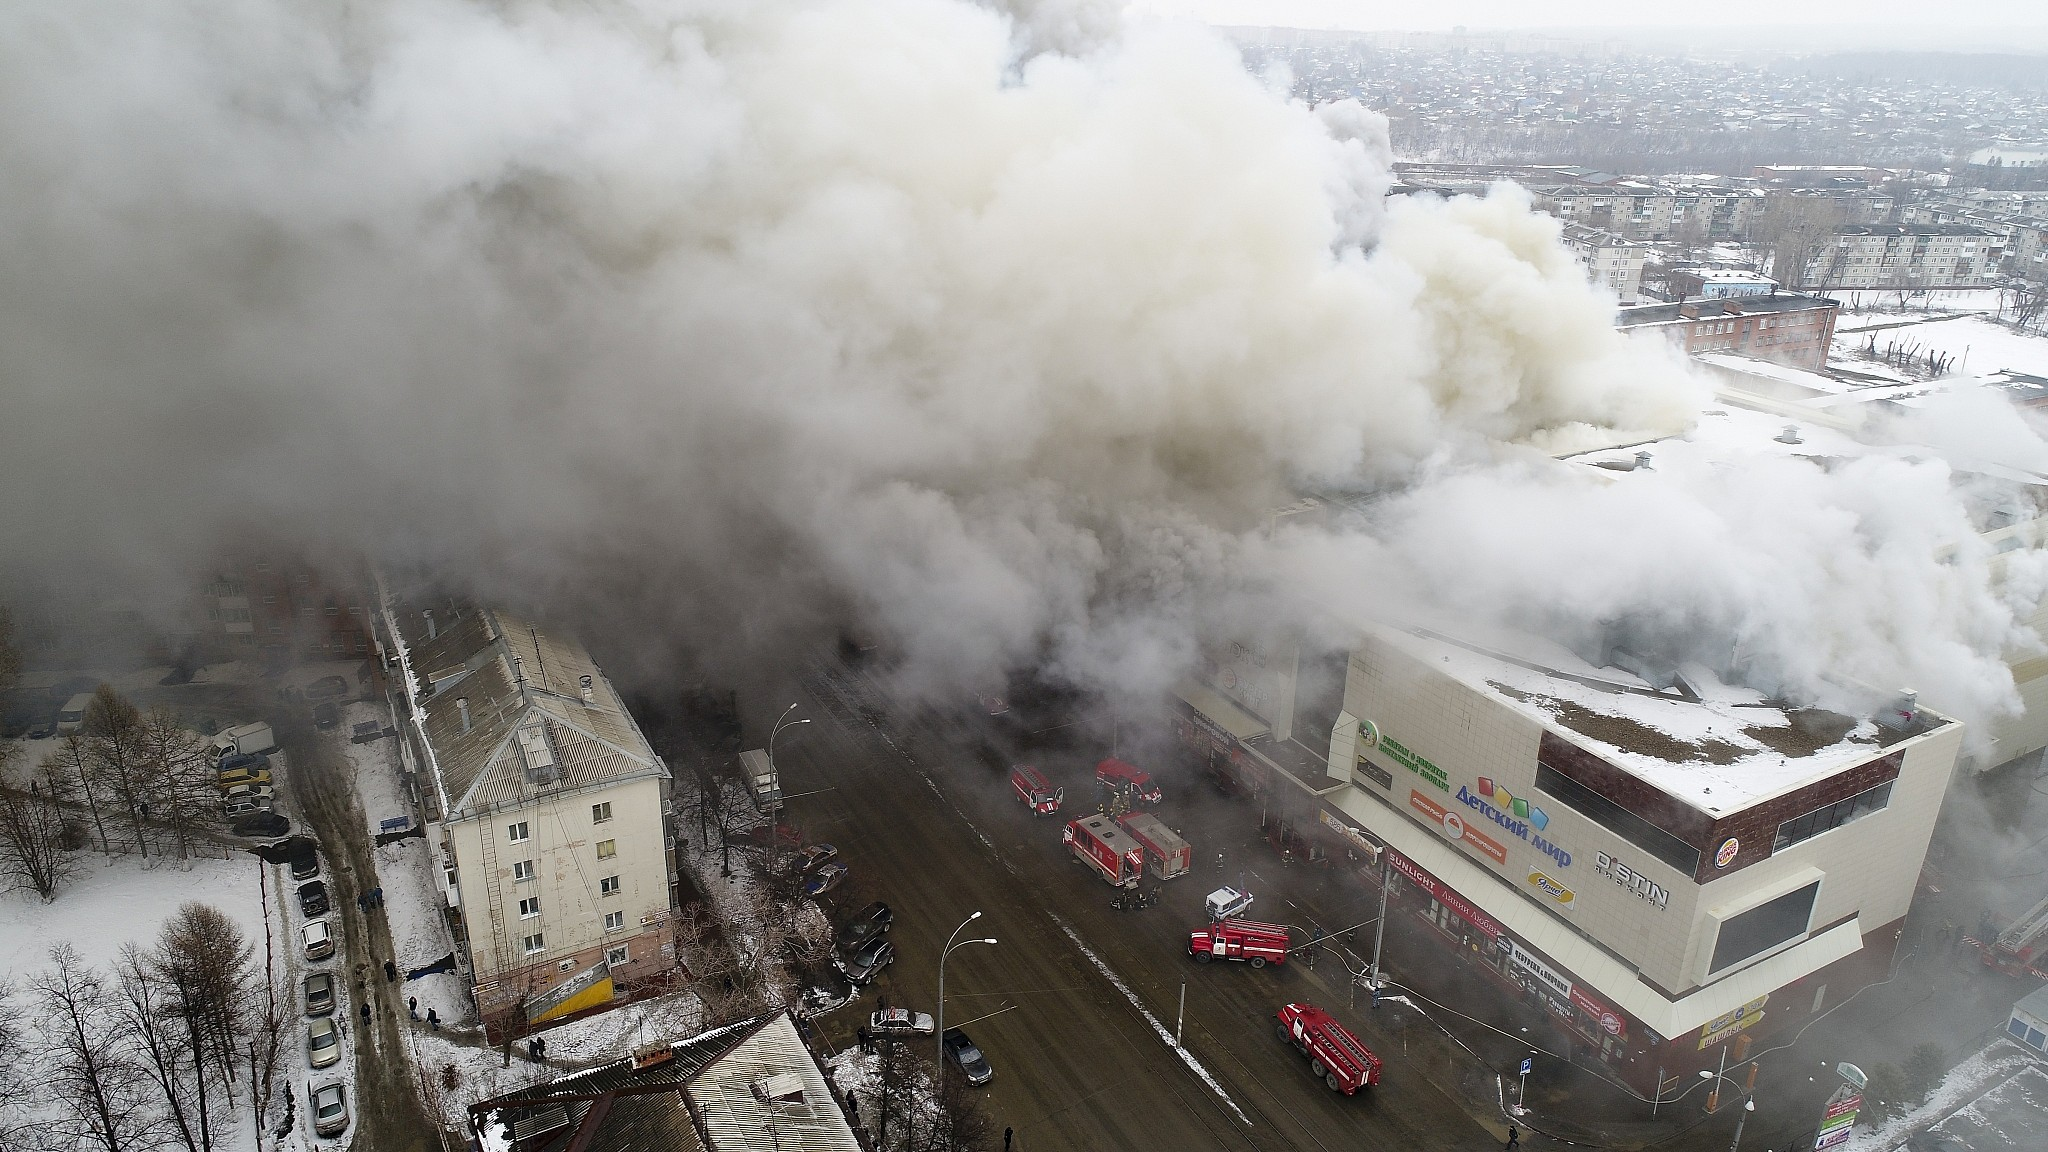 Smoke Rises Above A Multi Story Shopping Center In The Siberian City Of Kemerovo